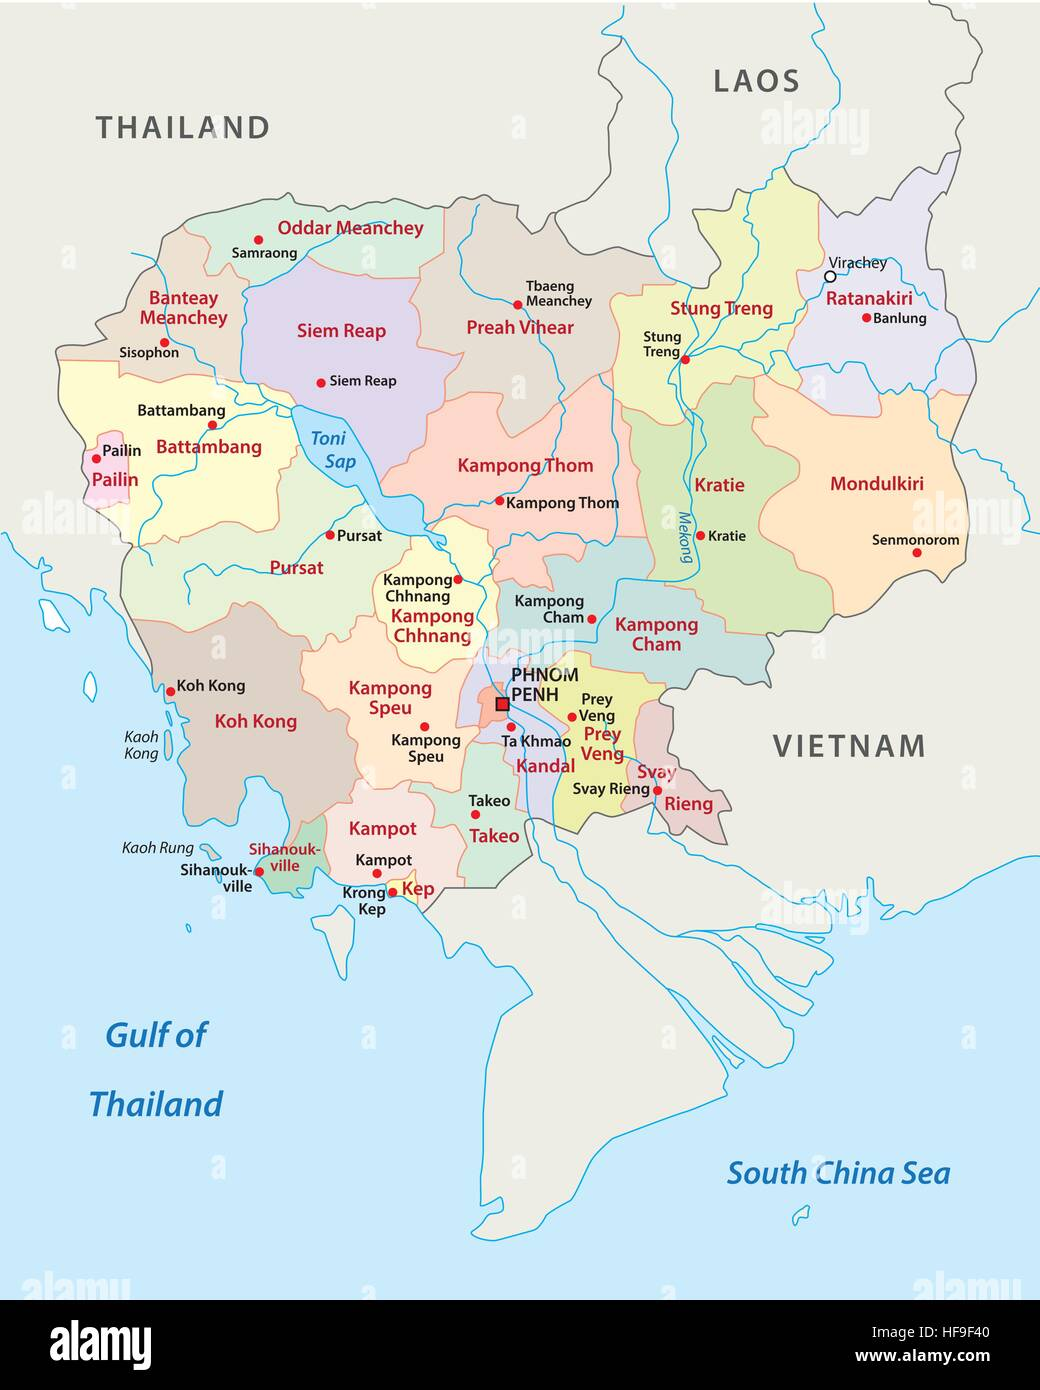 cambodia administrative and political map - Stock Image